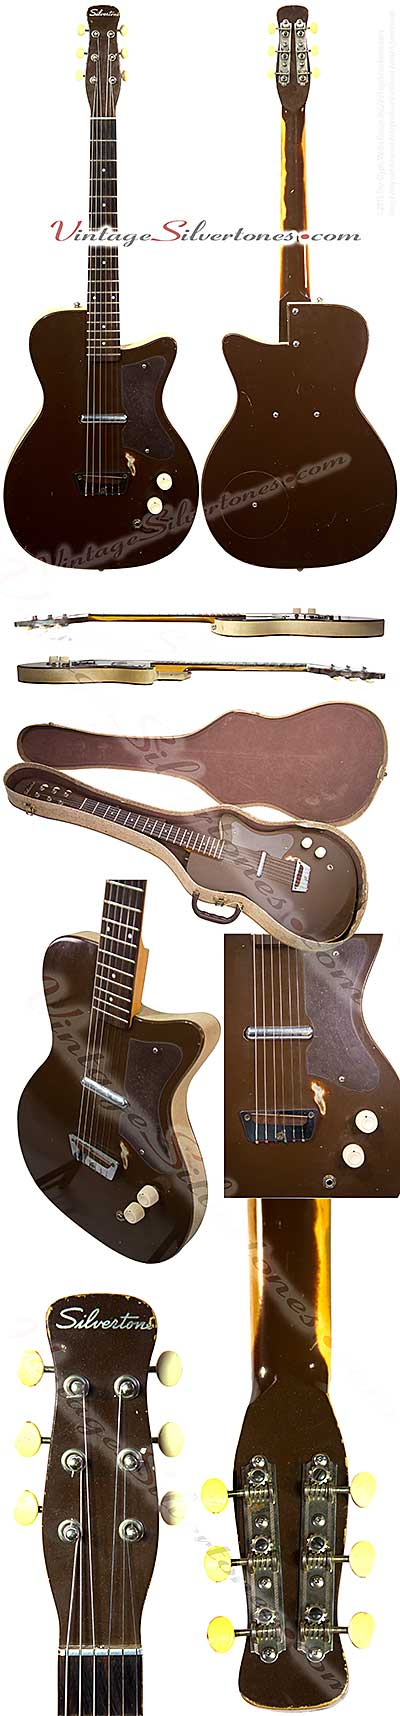 Silvertone 1452 made by Danelectro U1, one pickup, electric guitar, semi-hollow body, brown body with white tolex binding, masonite body, lipstick pickup, made in 1959